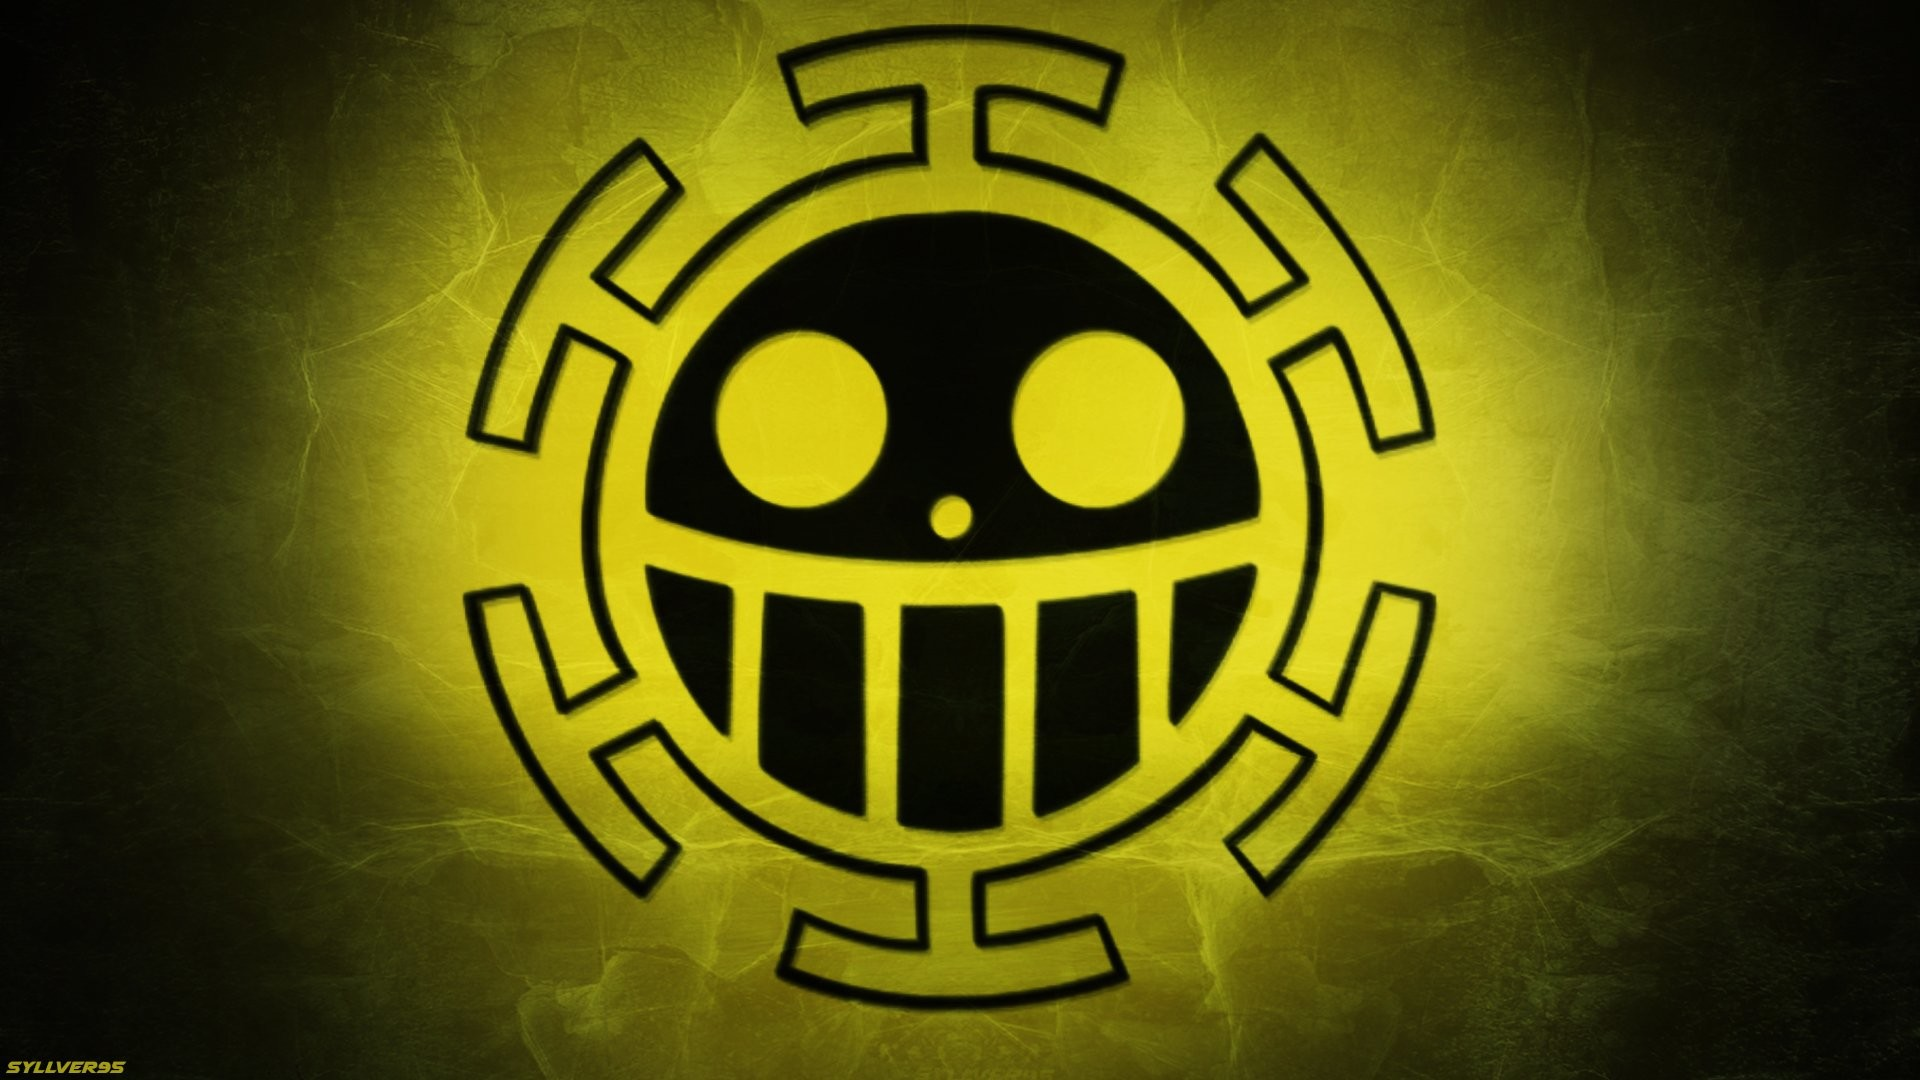 1920x1080 Anime - One Piece Trafalgar Law Anime Pirate Jolly Roger Yellow Wallpaper